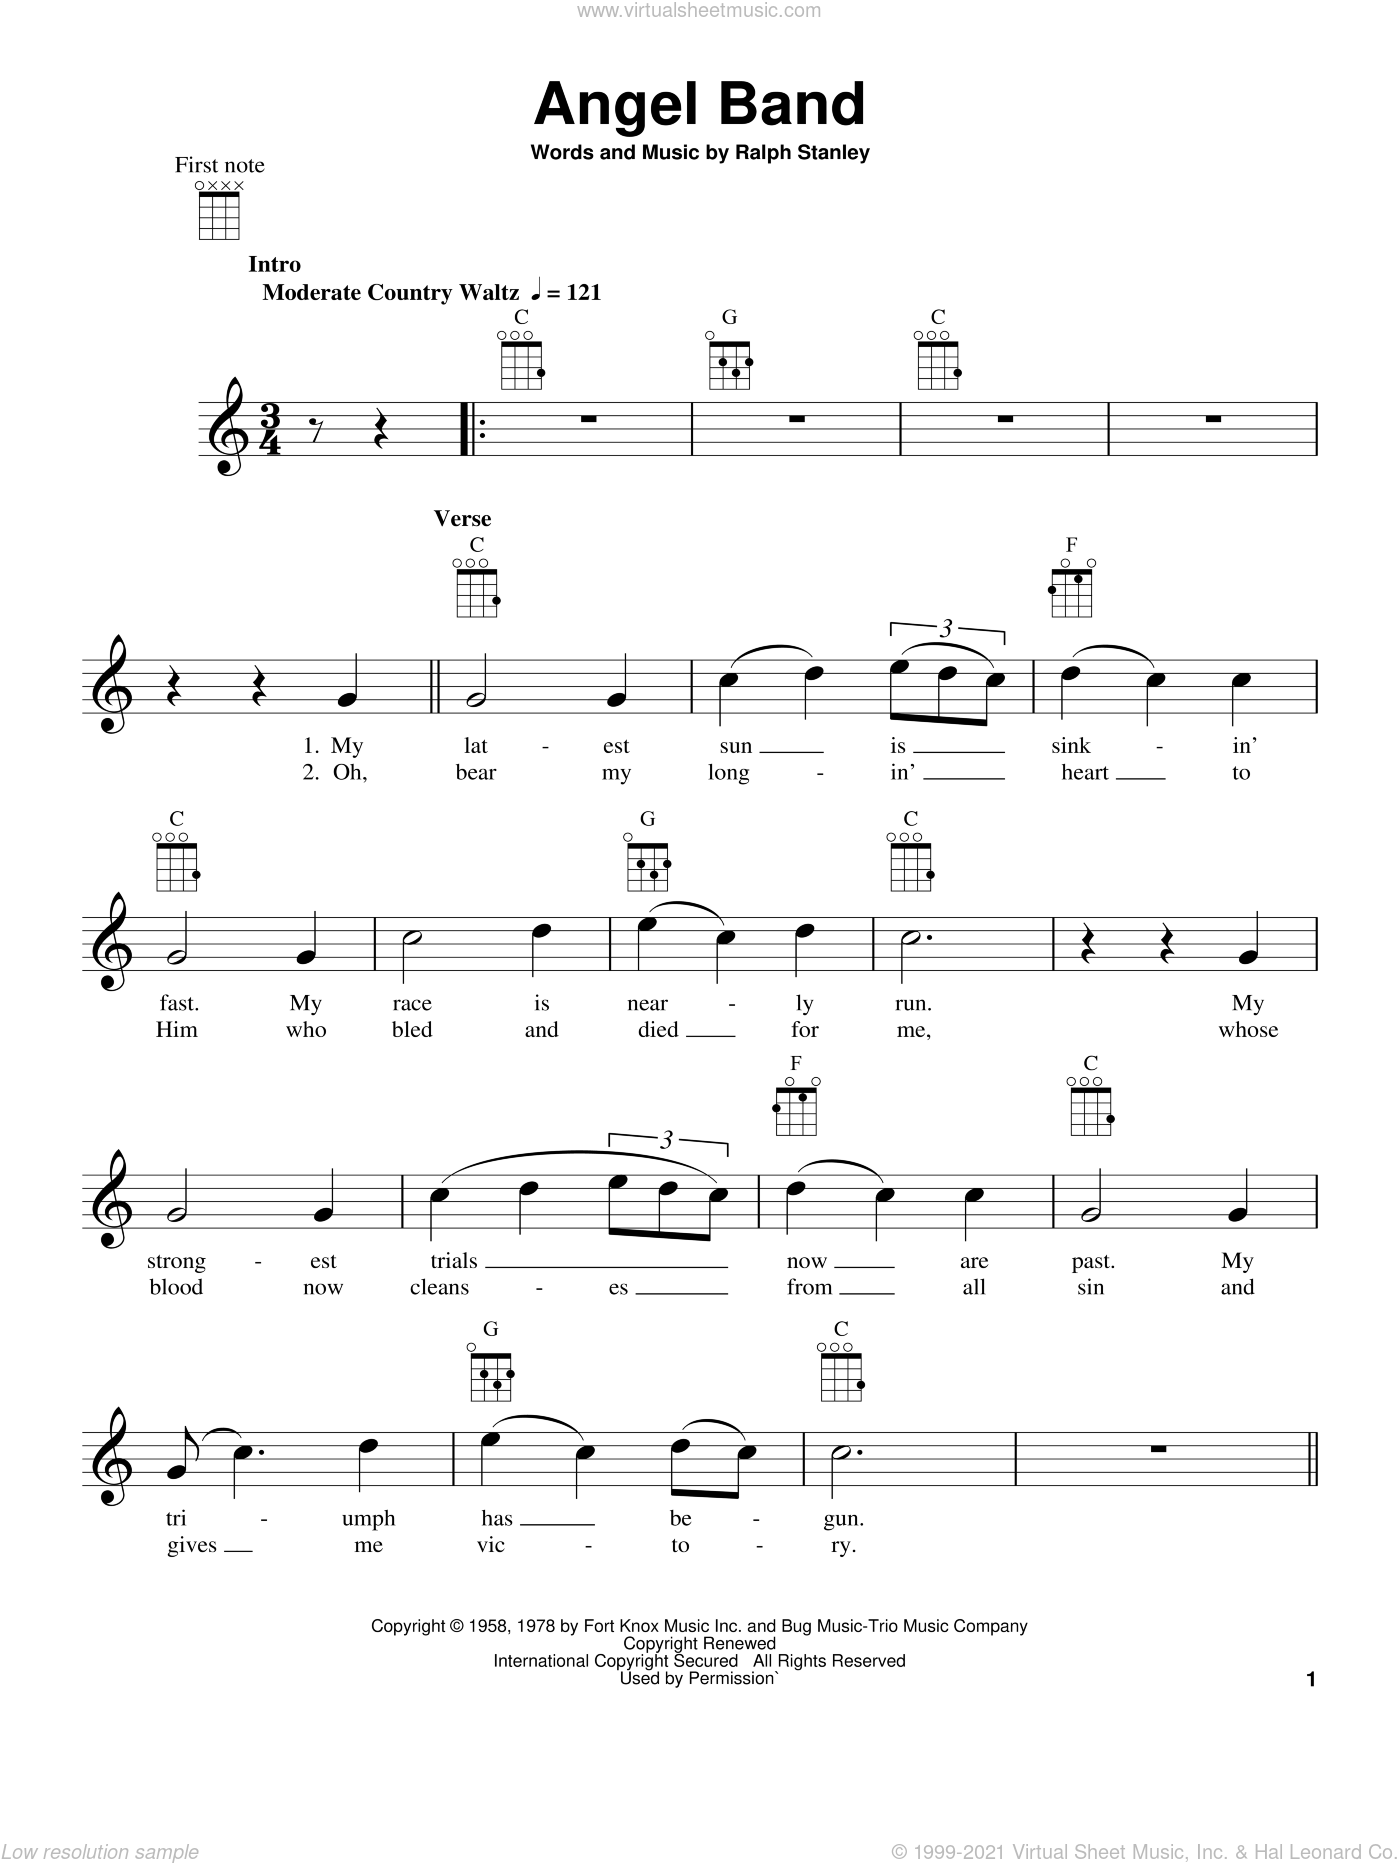 Angel Band sheet music for ukulele by The Stanley Brothers and Ralph Stanley, intermediate skill level